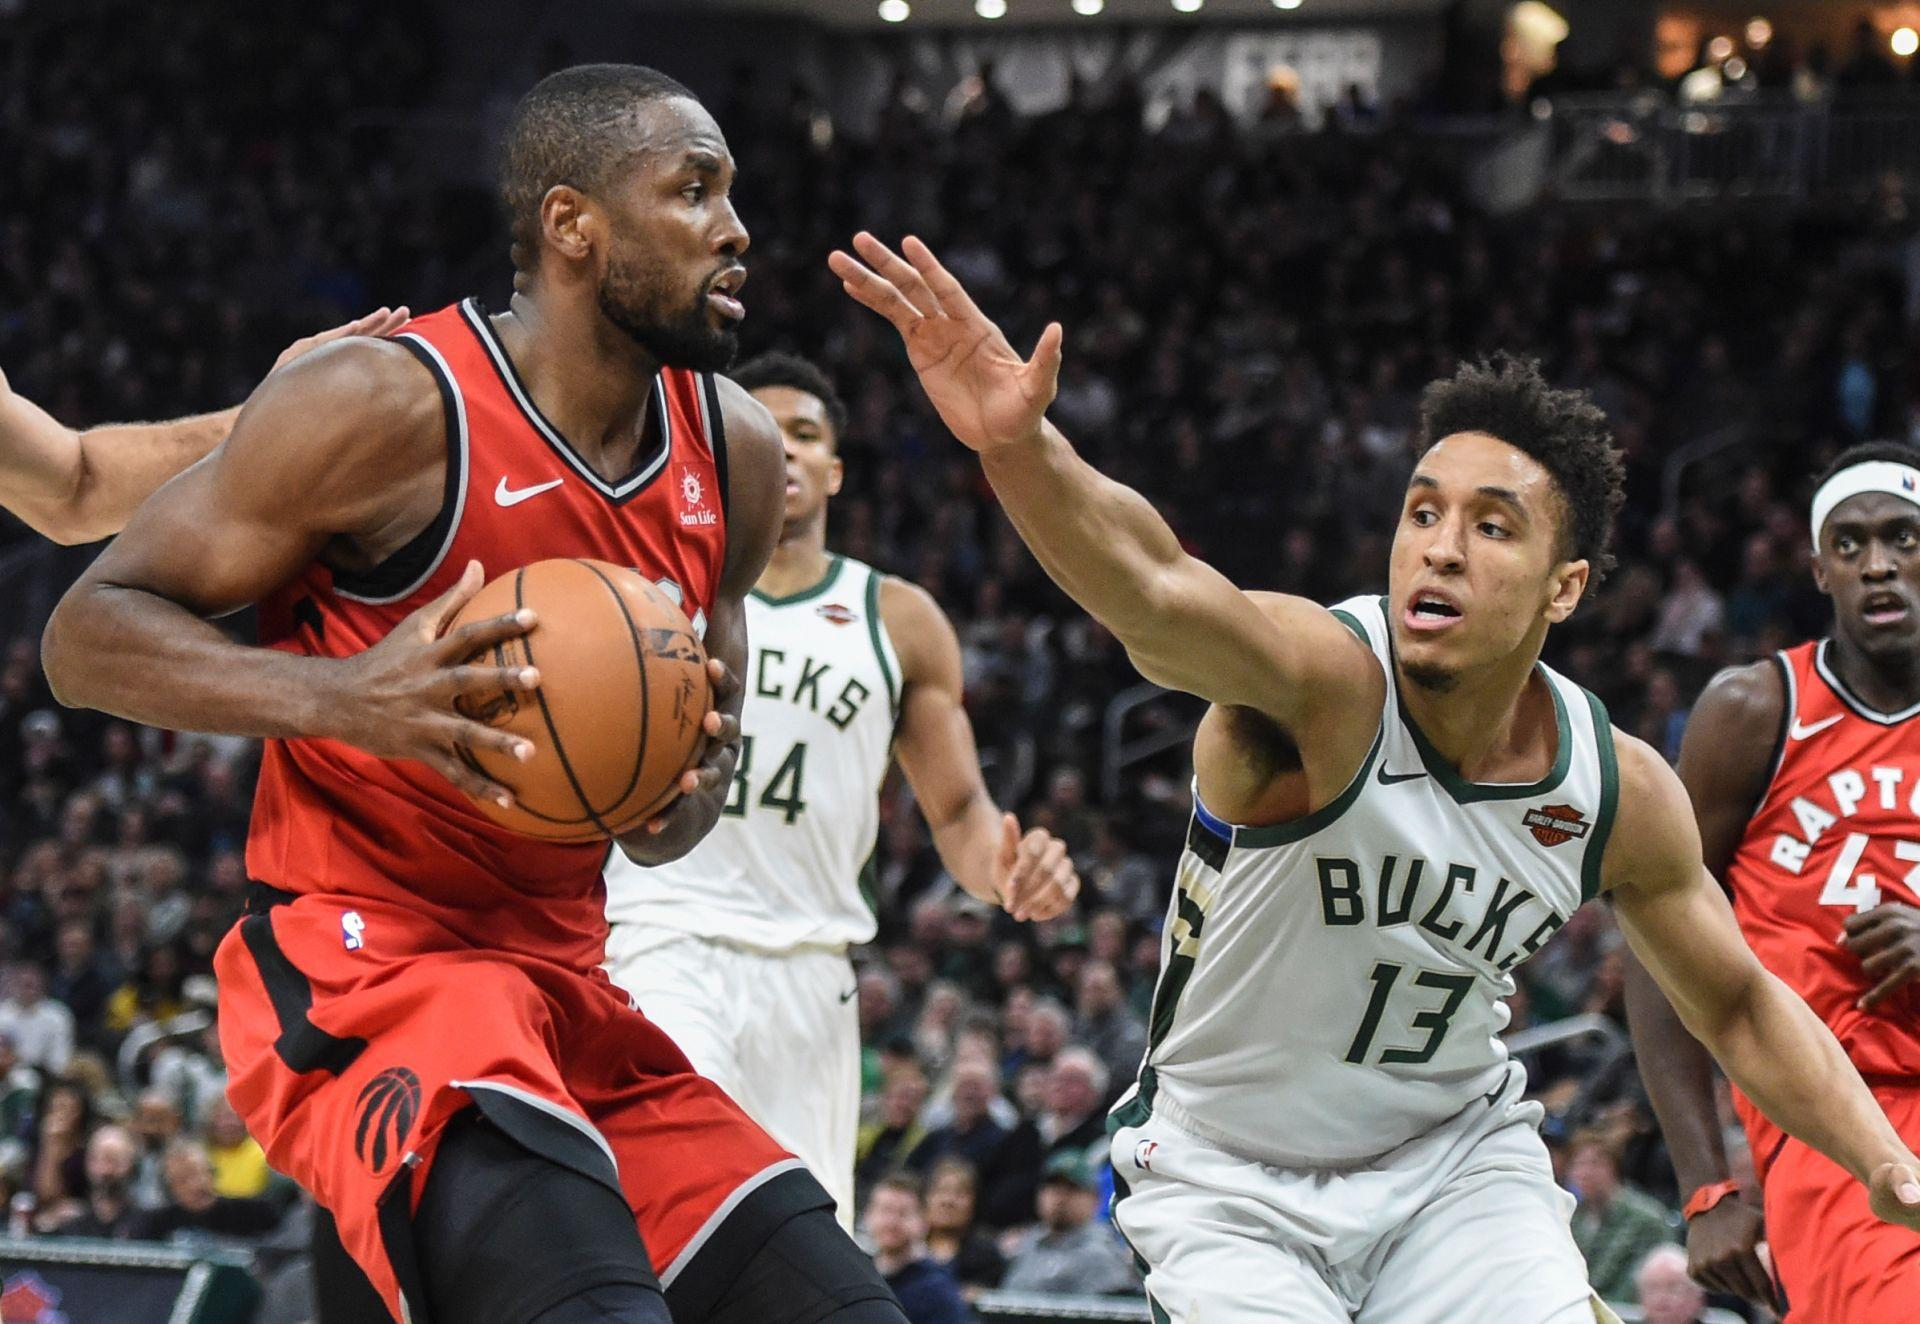 bucks vs raptors - photo #16